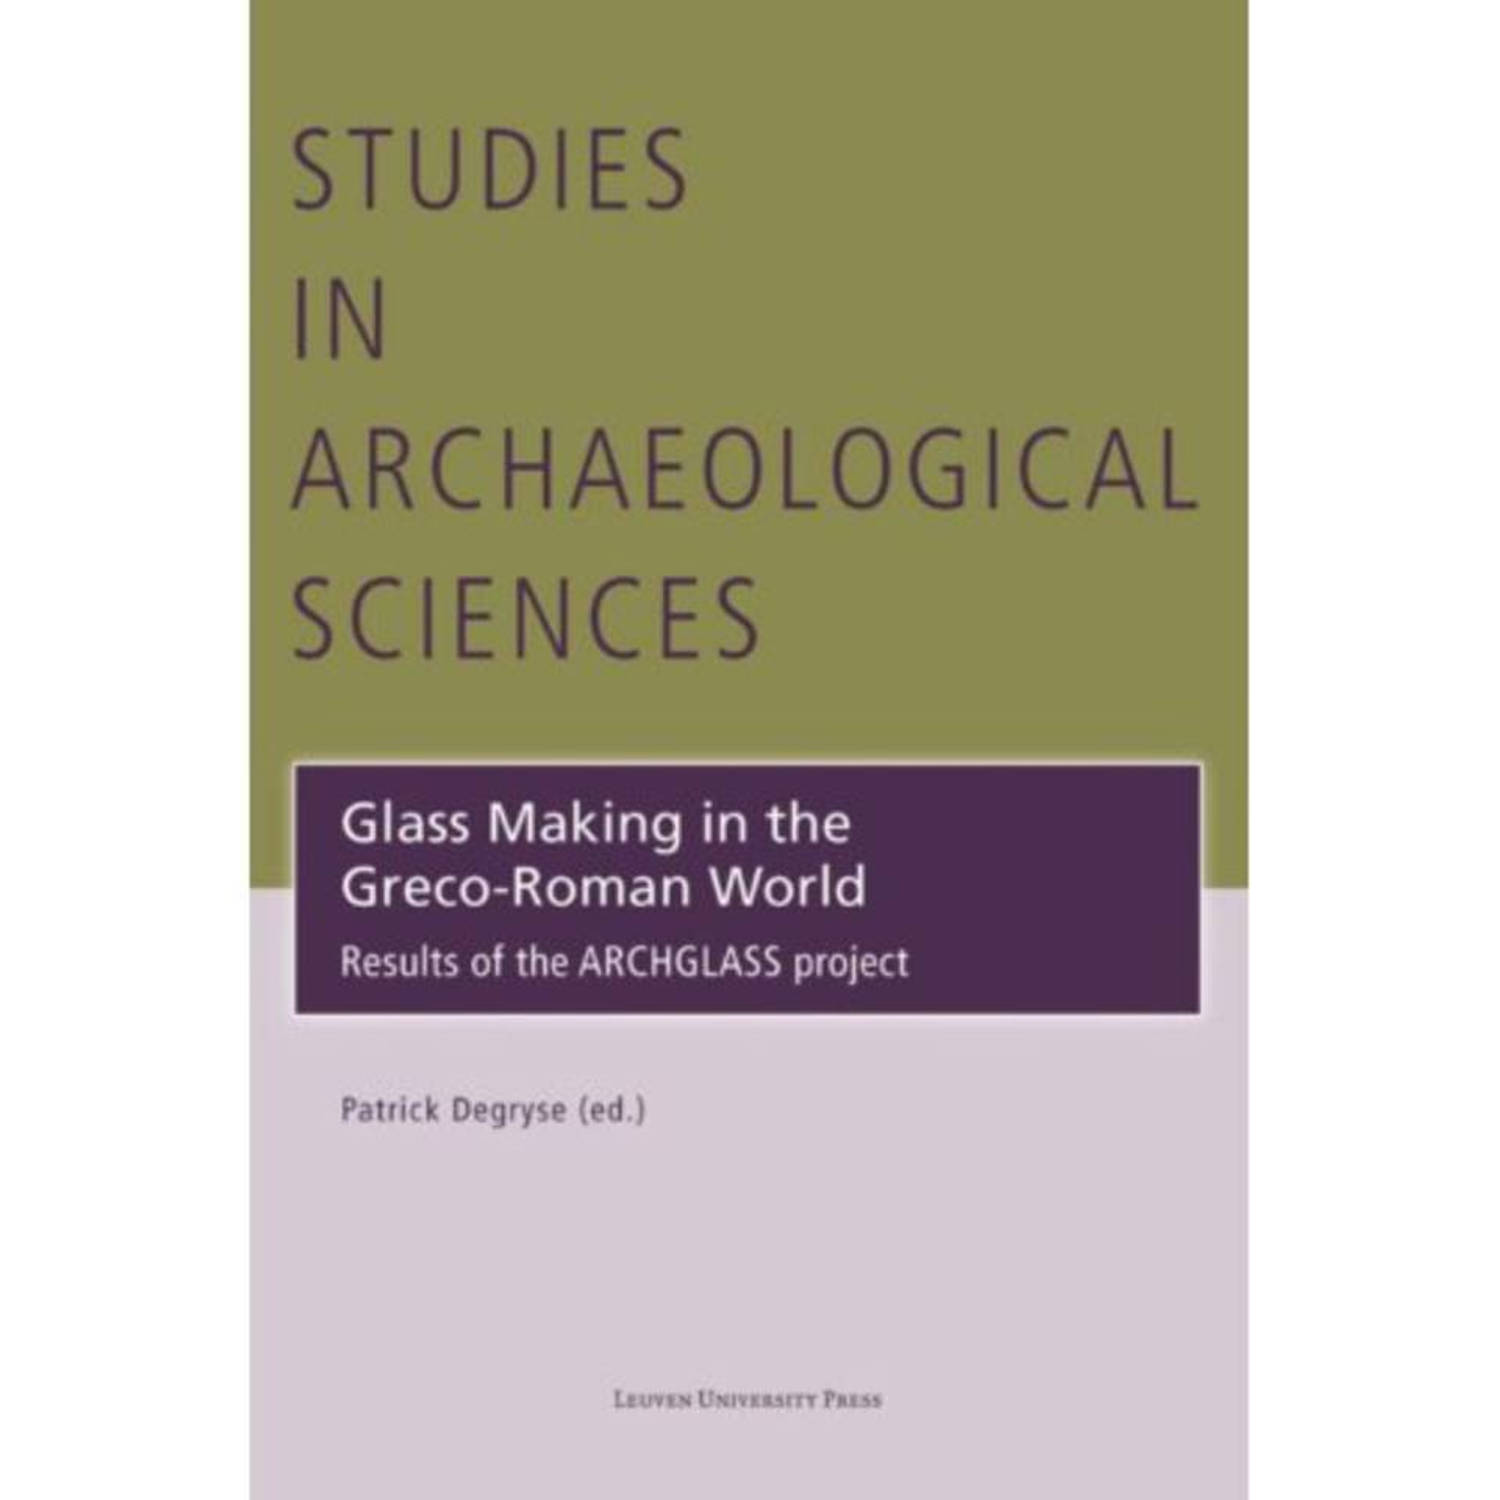 Glass making in the greco-roman world - Studies in